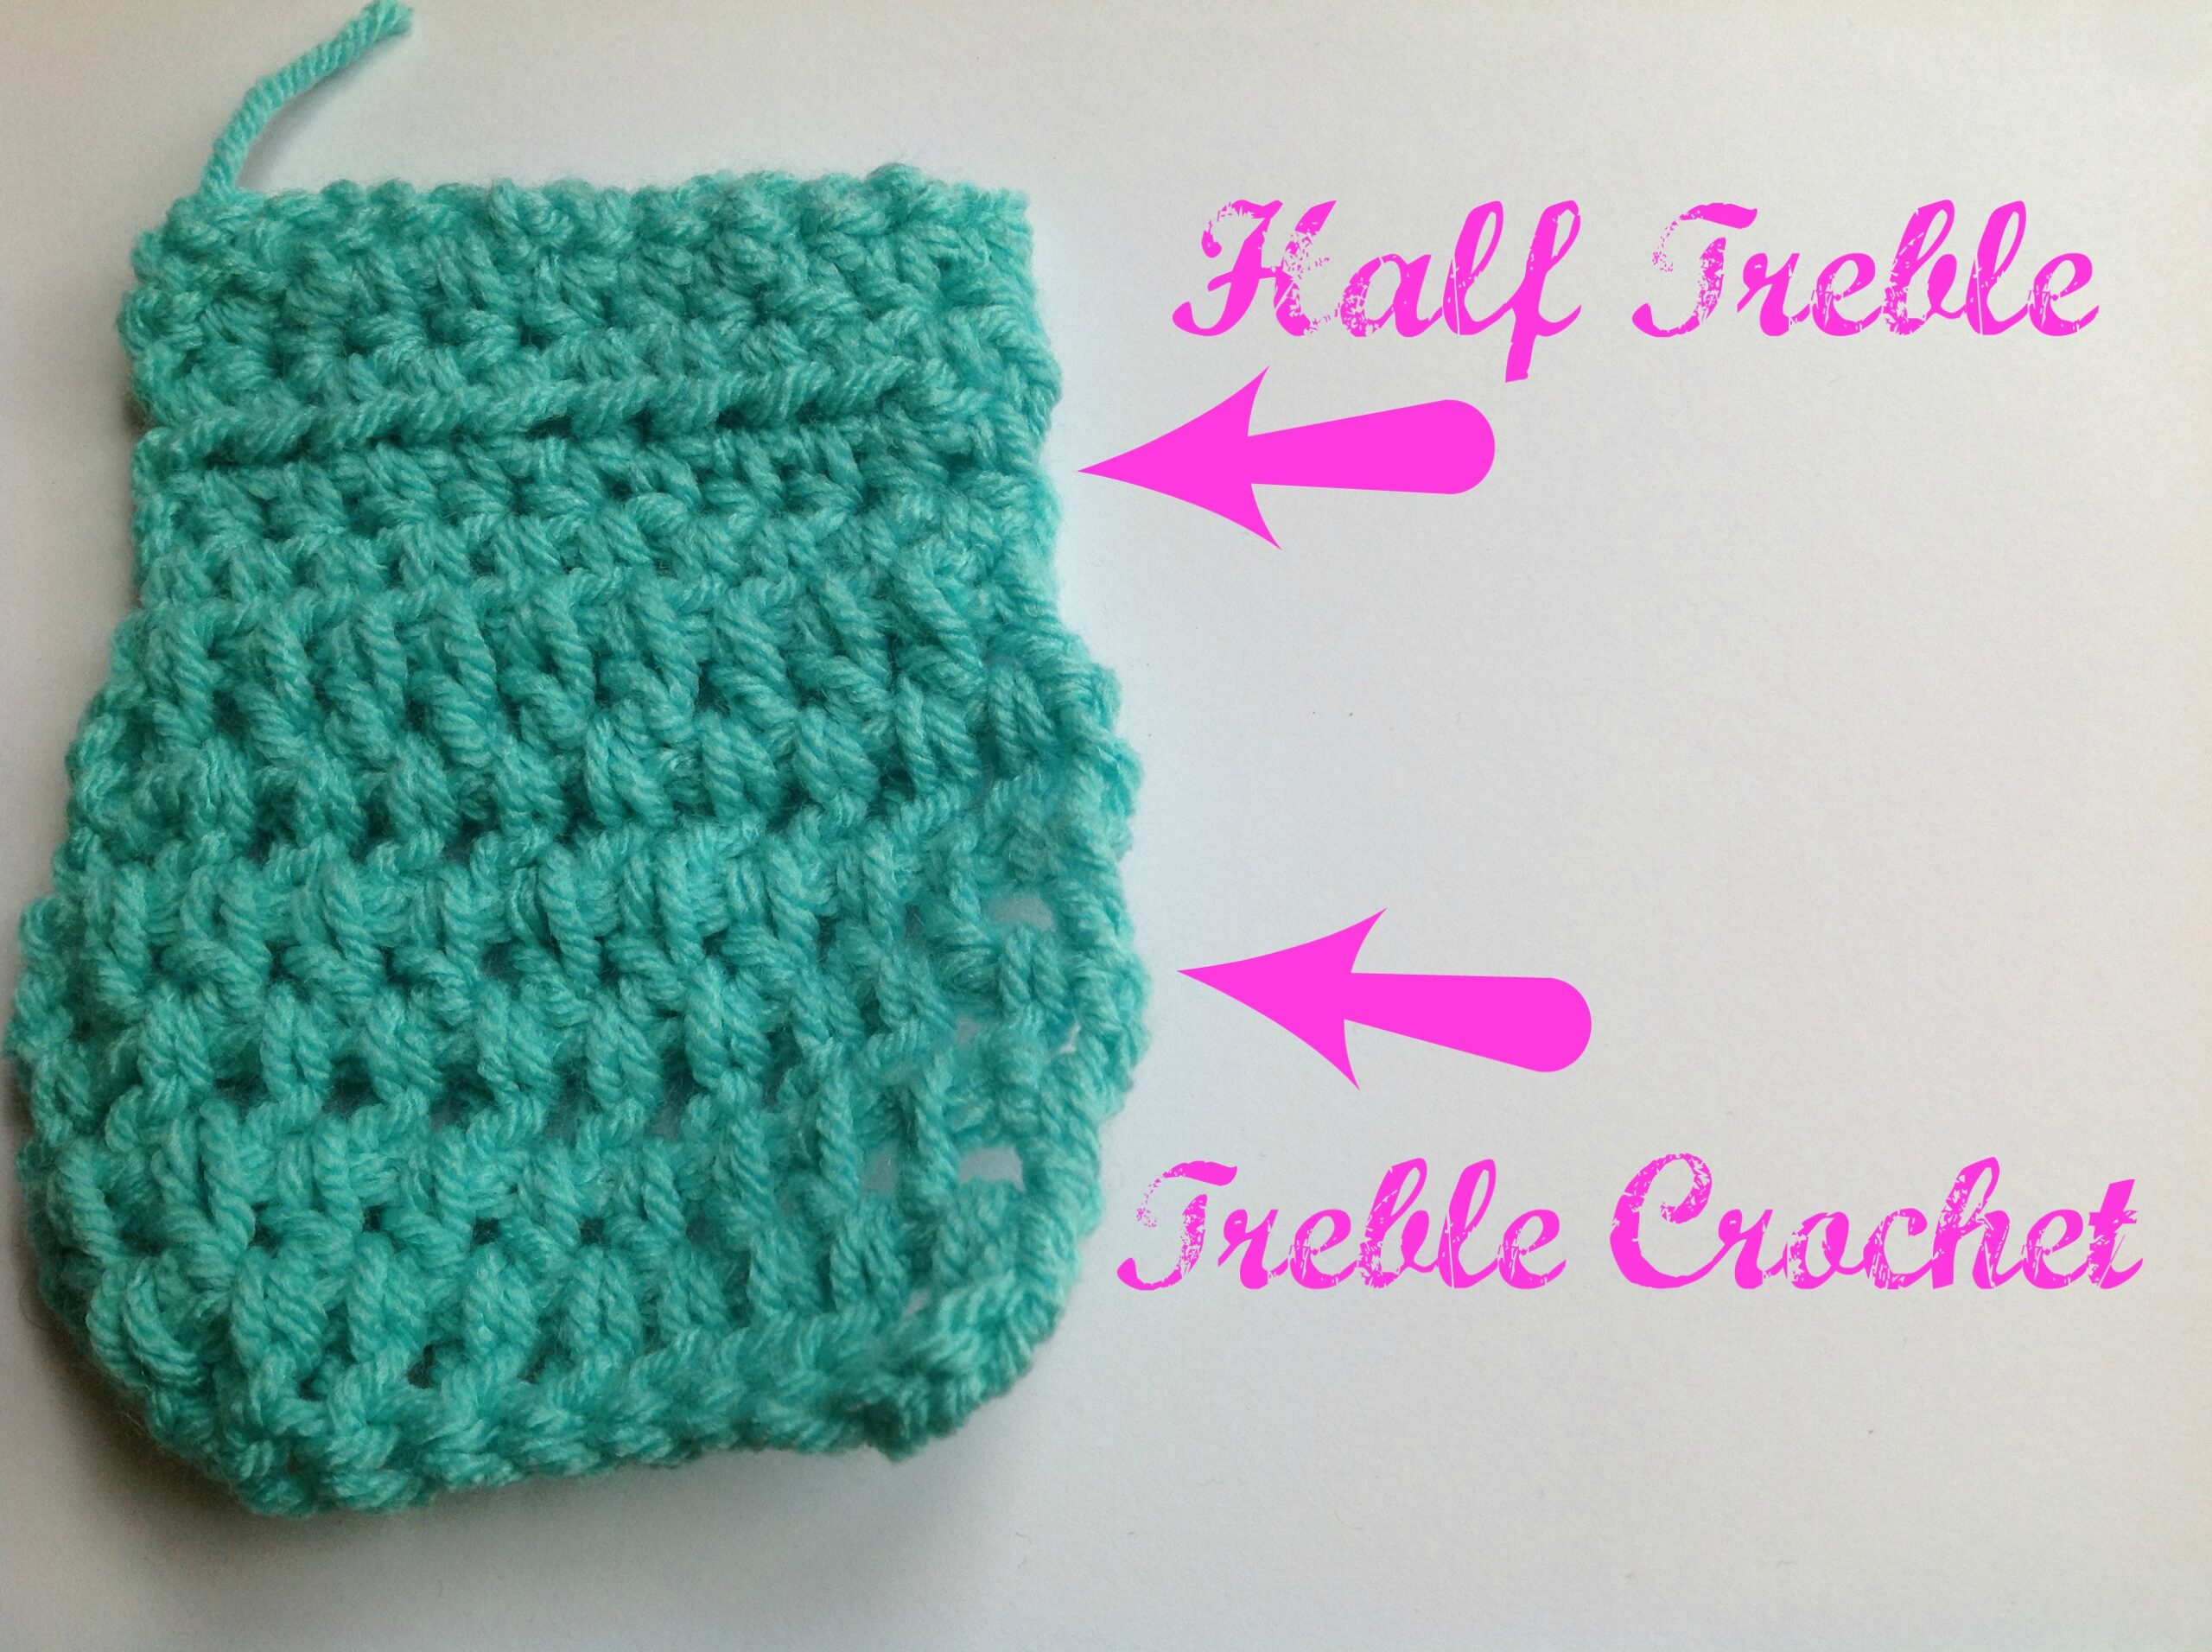 Crochet Stitches Uk Treble : Treble Crochet Stitch Treble And Treble Crochet